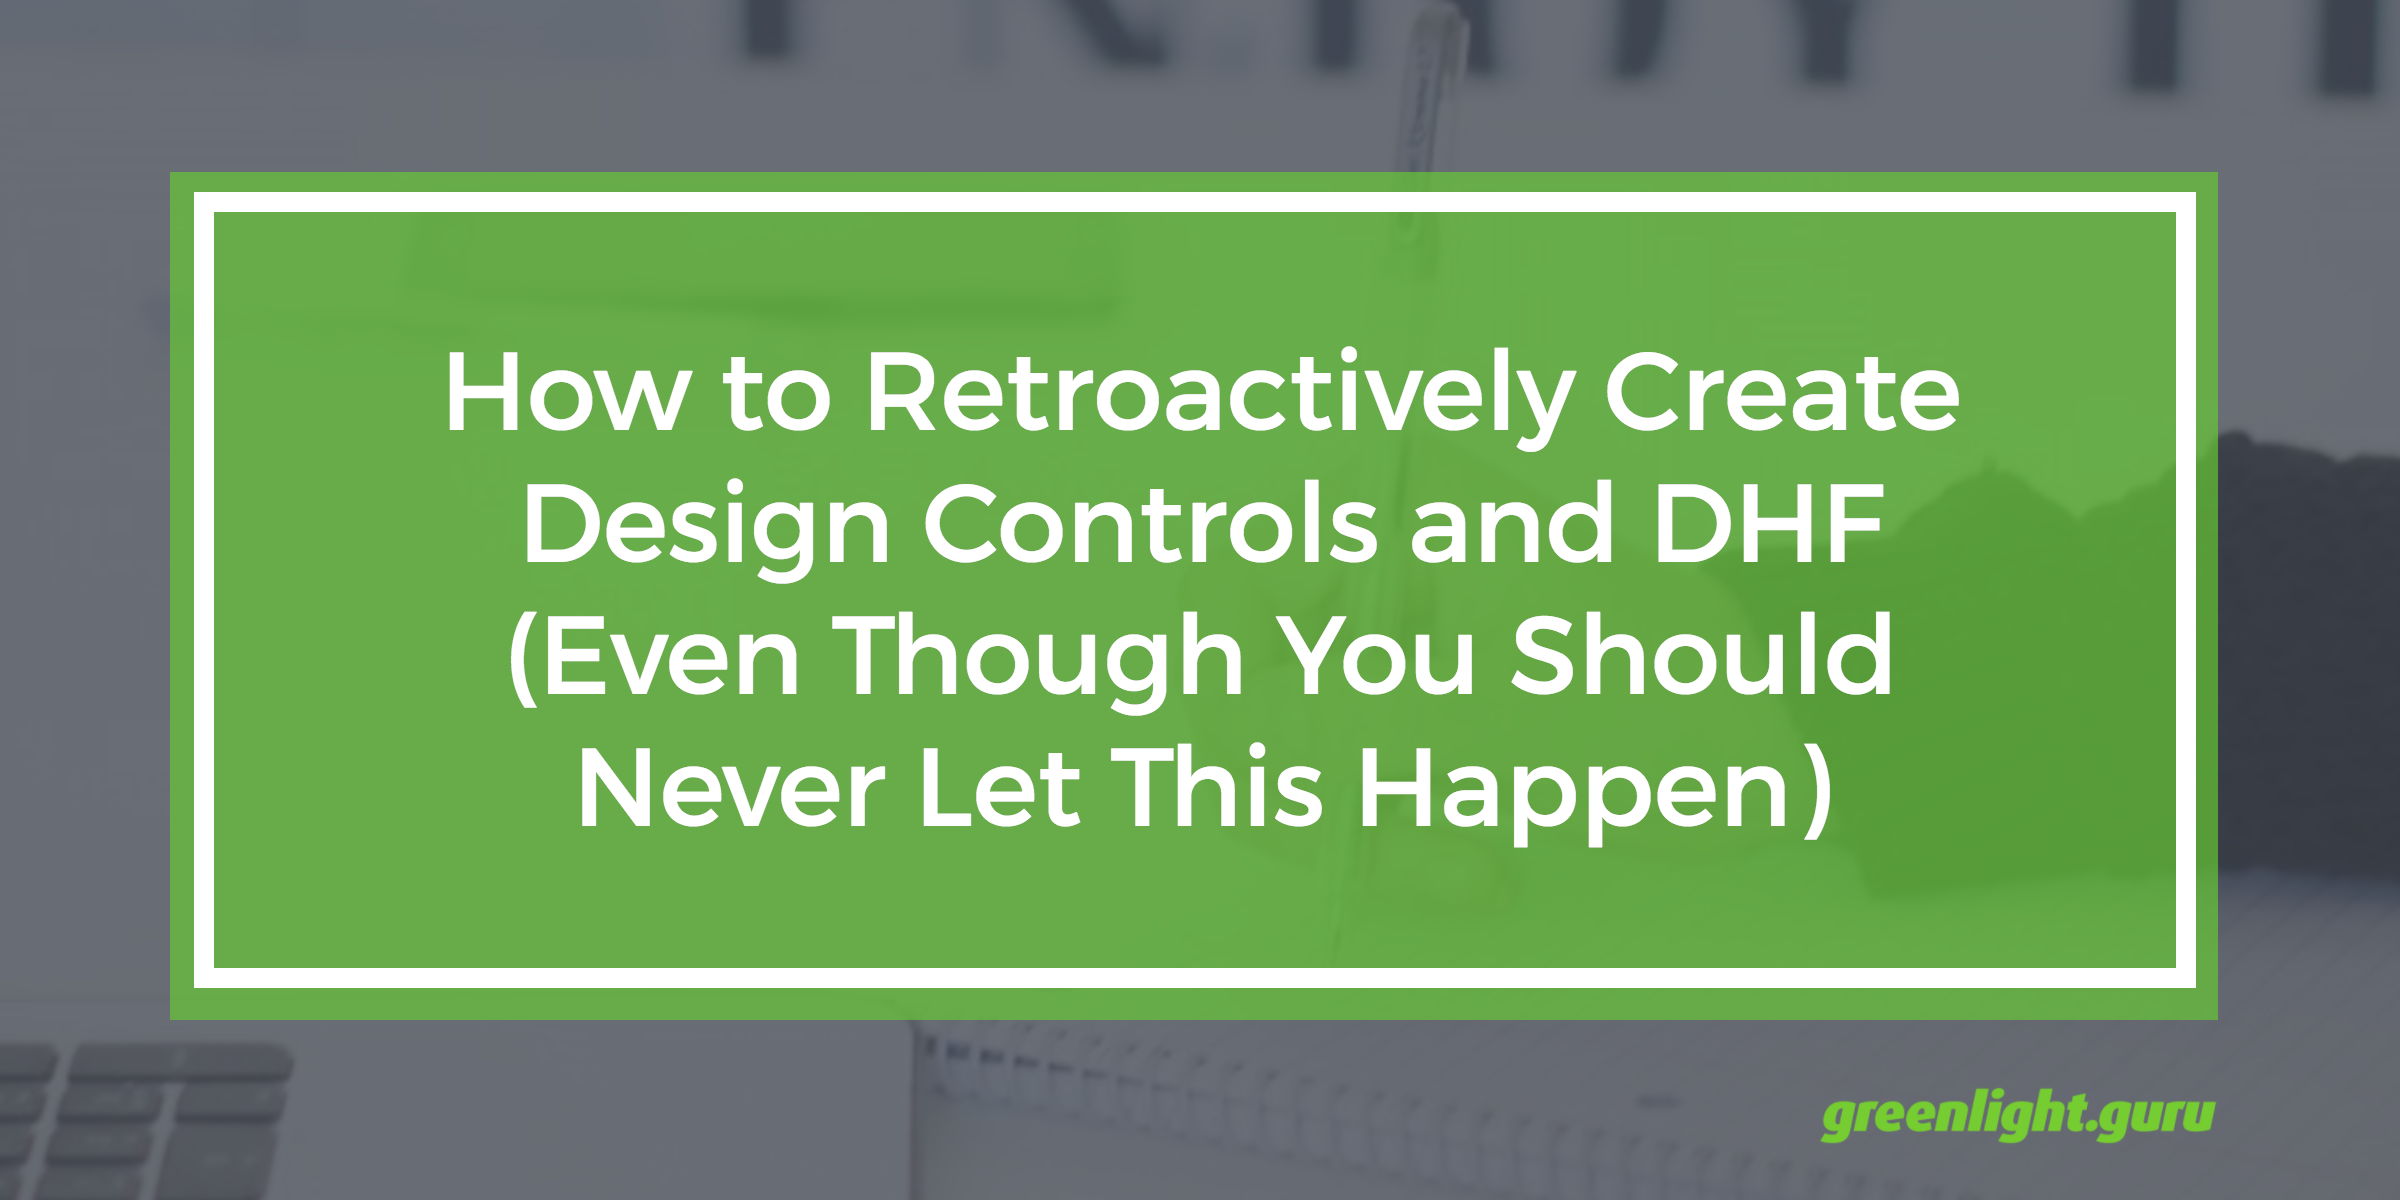 how_to_retroactively_create_design_controls_dhf.png